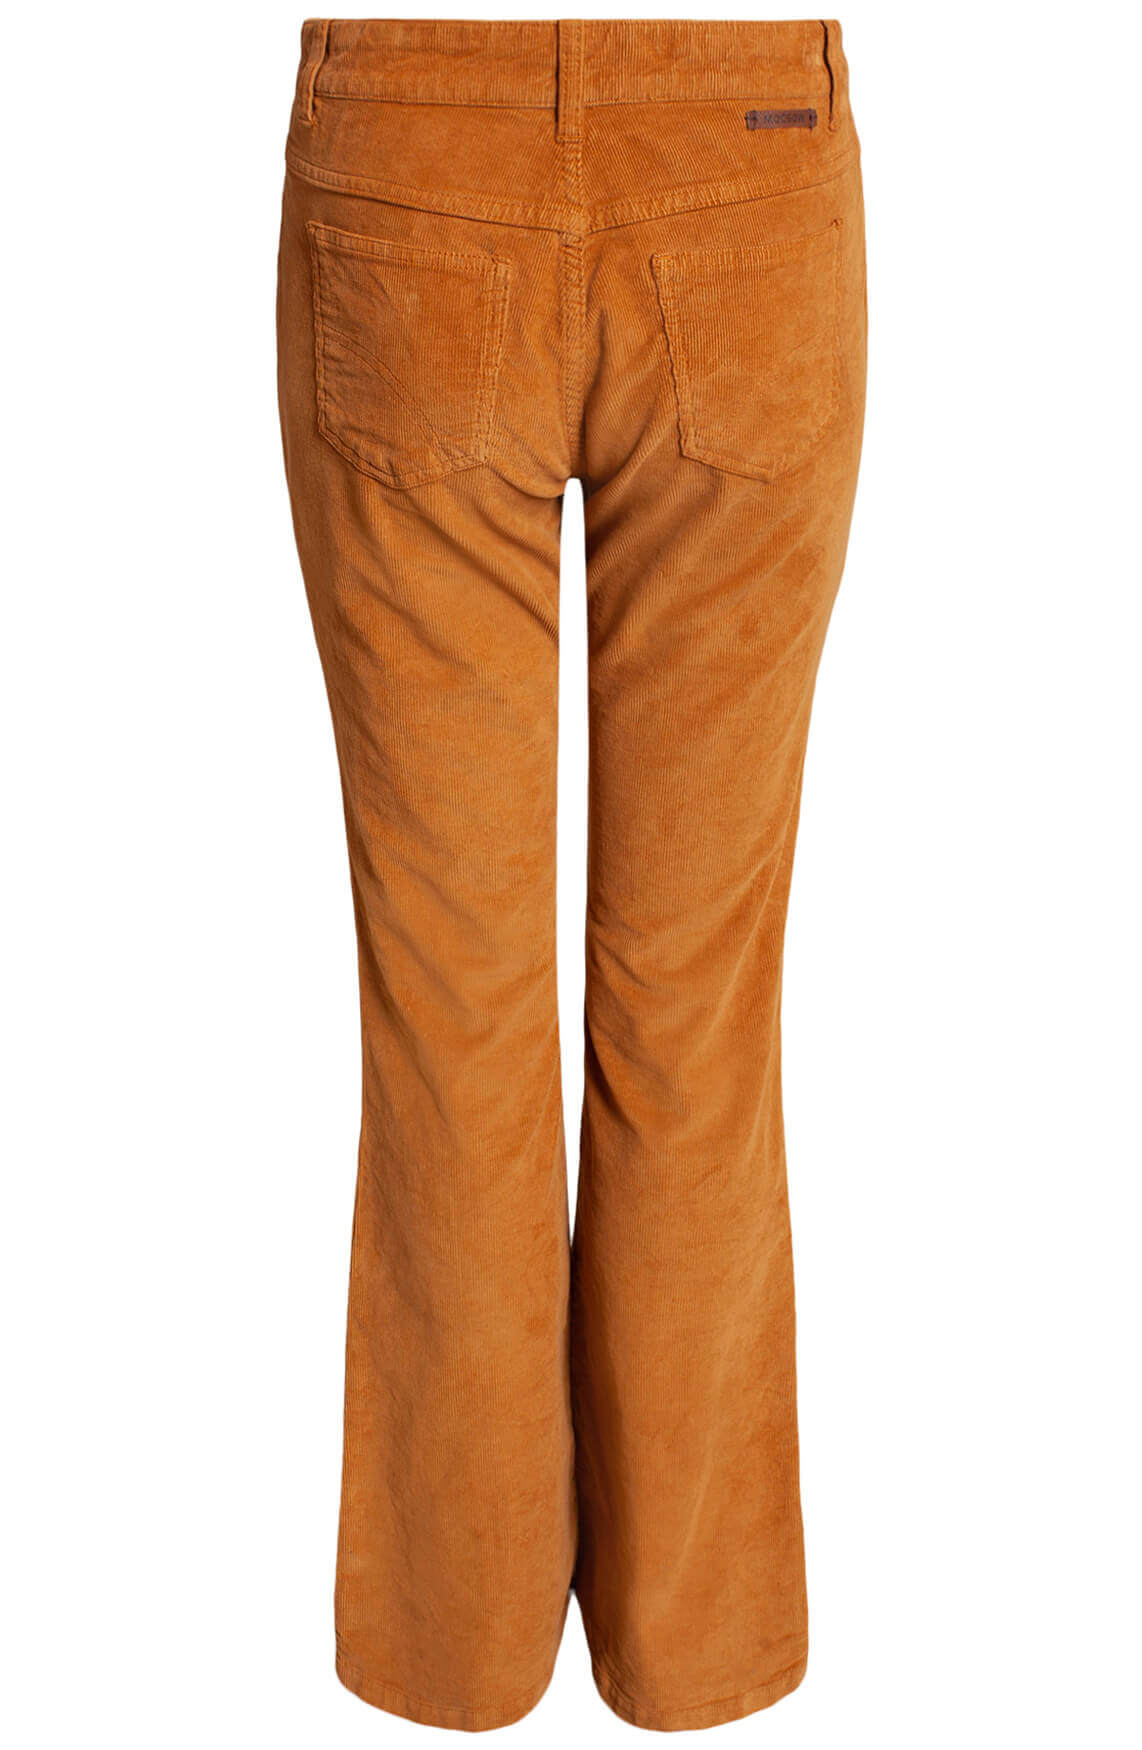 Moscow Dames Miroslava trousers Bruin